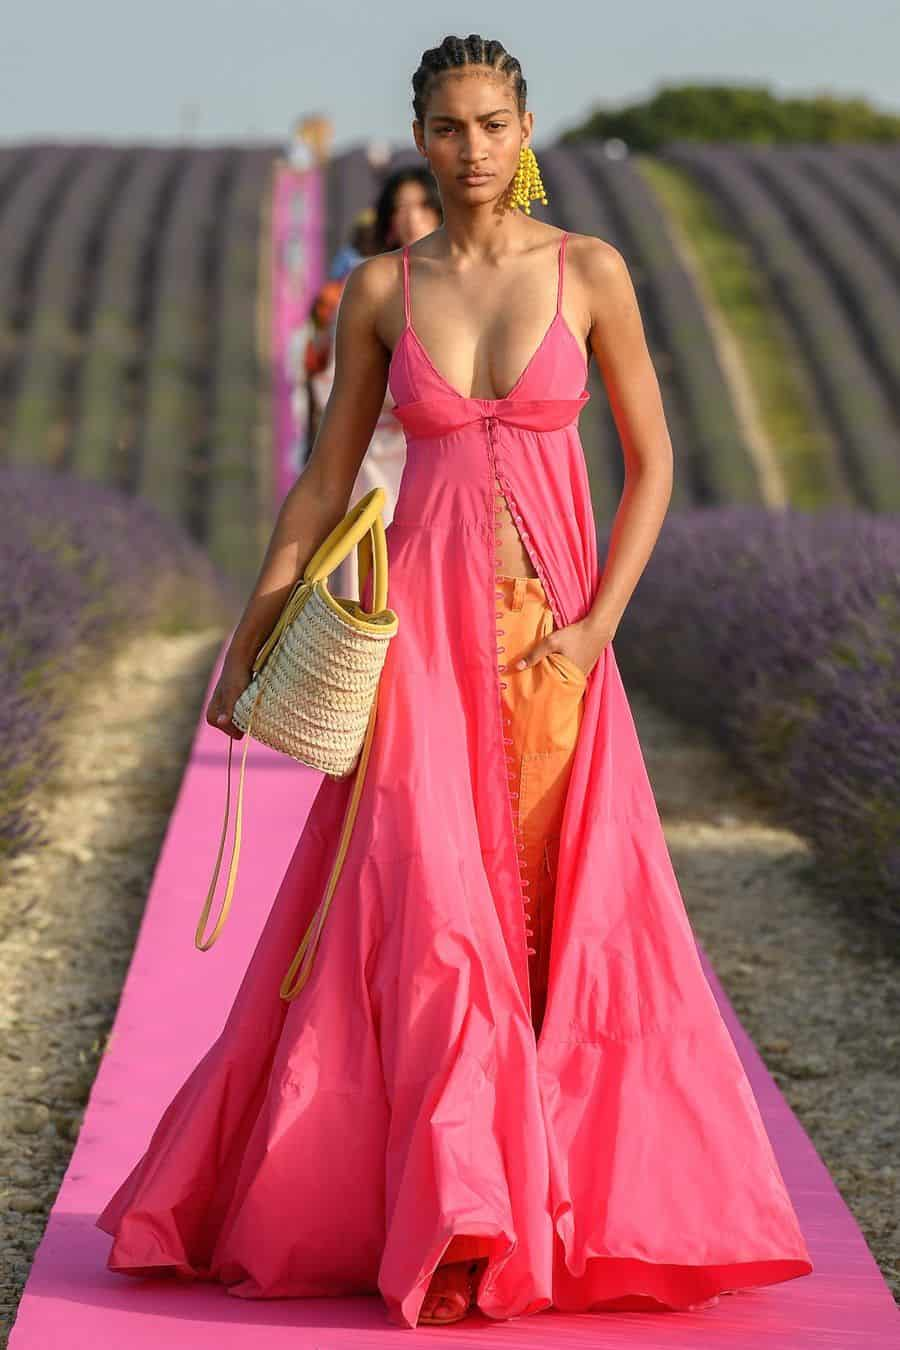 Women Fashion 2021 The Hottest Looks to Try In 2021 ...